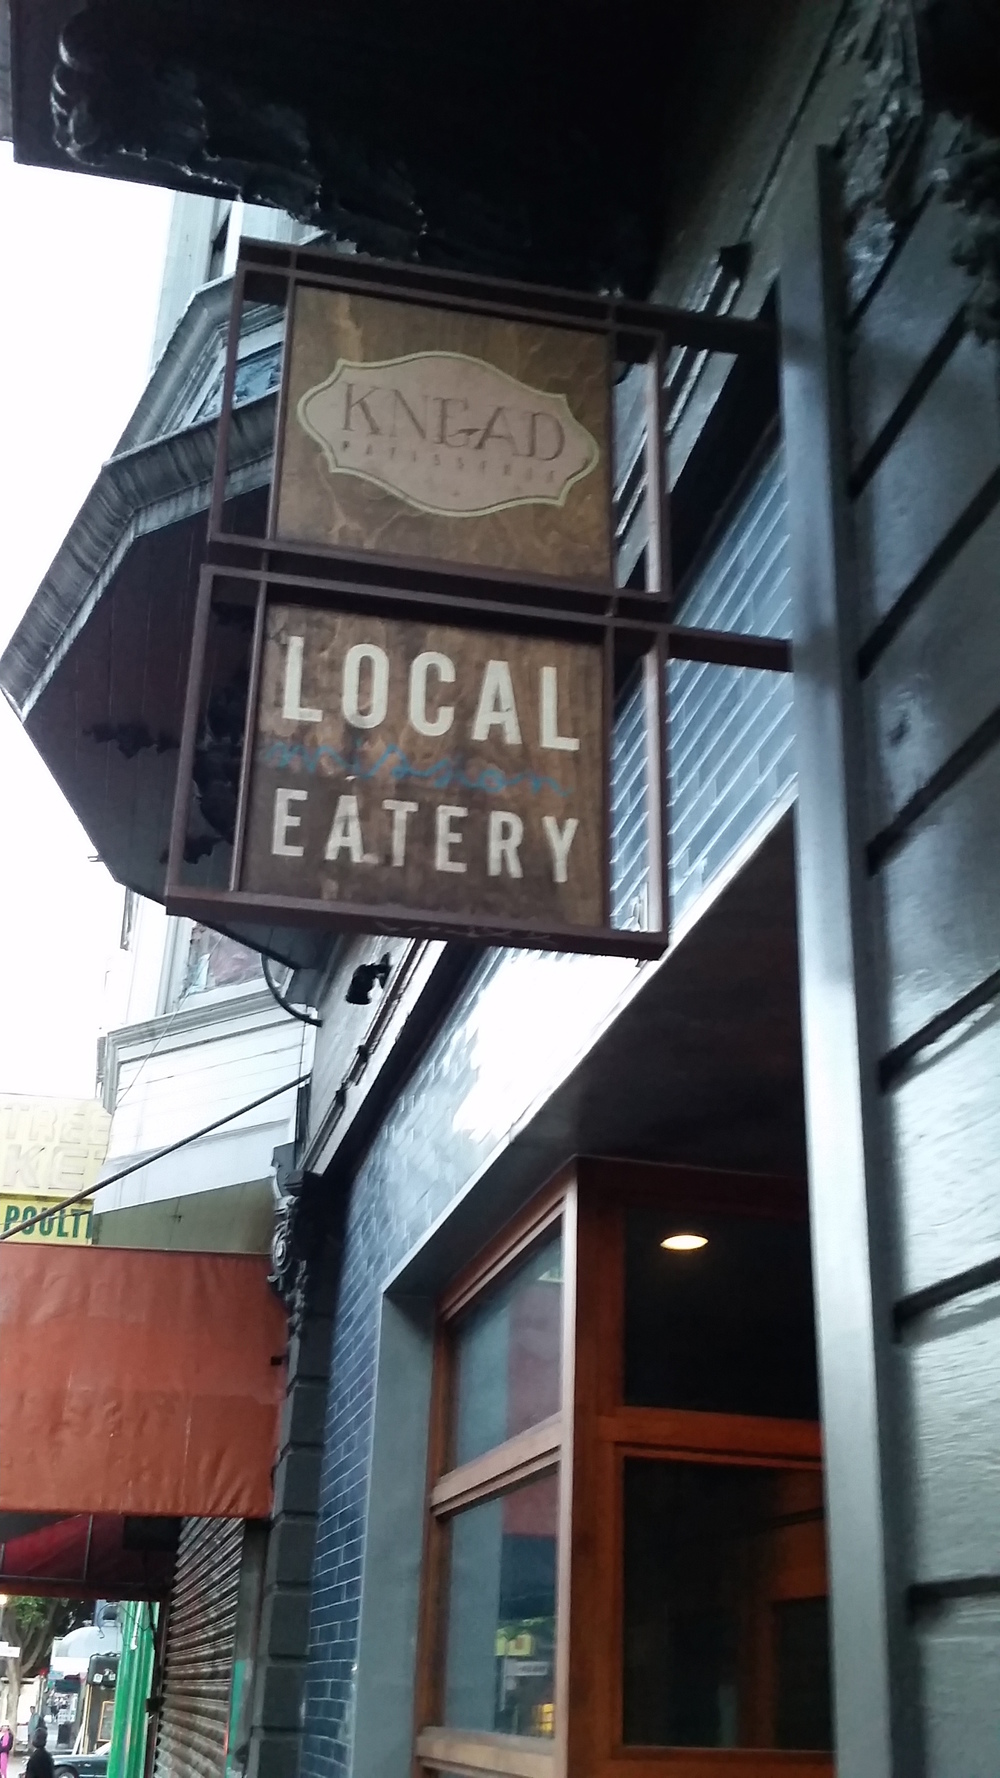 Knead Local Eatery.jpeg